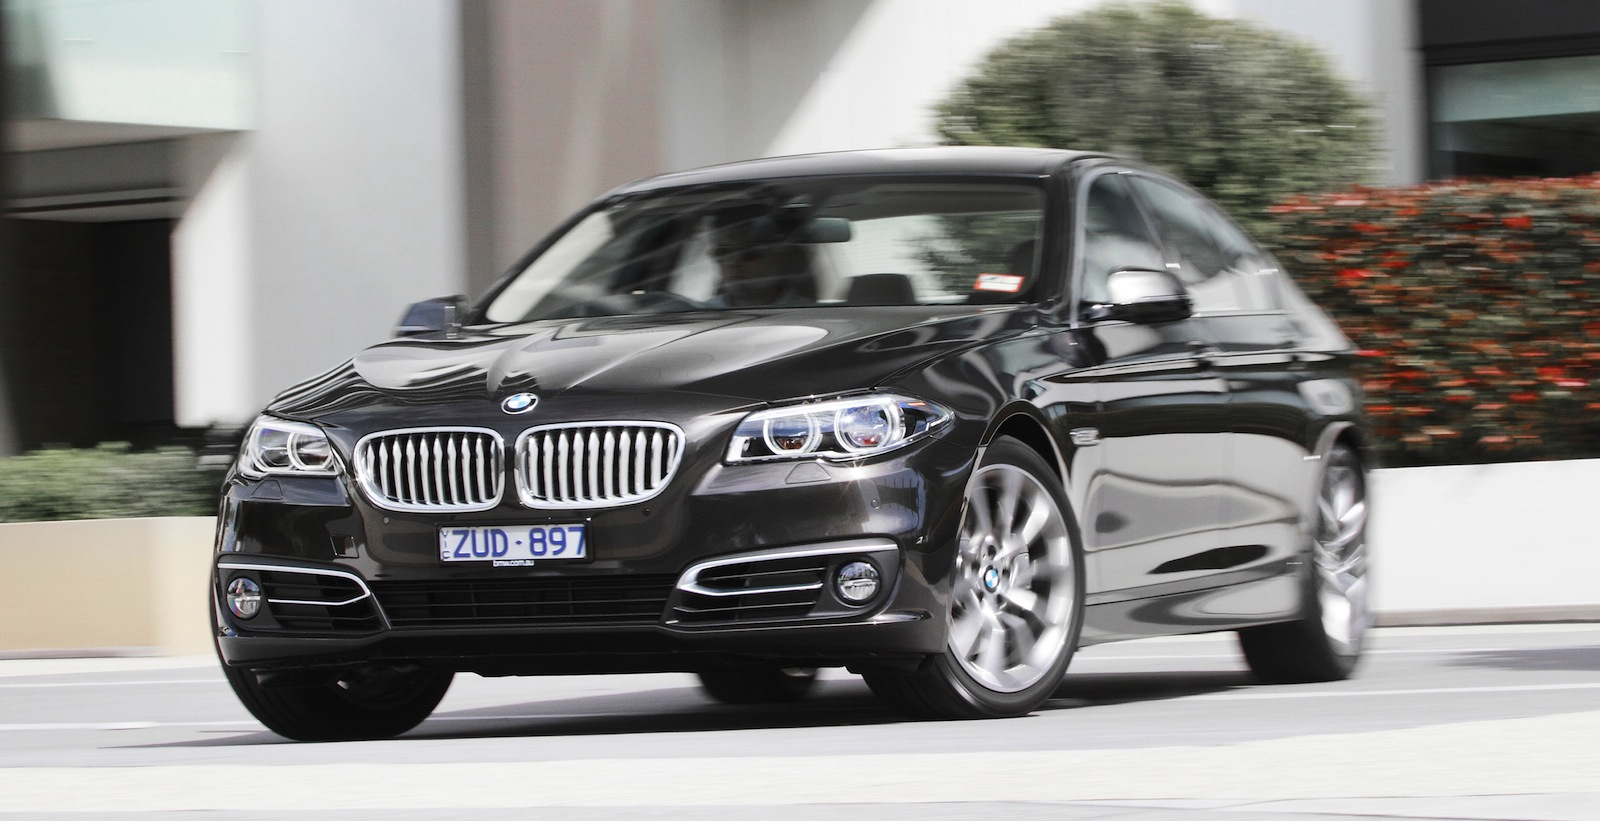 bmw f10 5 series lci priced from aud79 900 in australia autoevolution. Black Bedroom Furniture Sets. Home Design Ideas